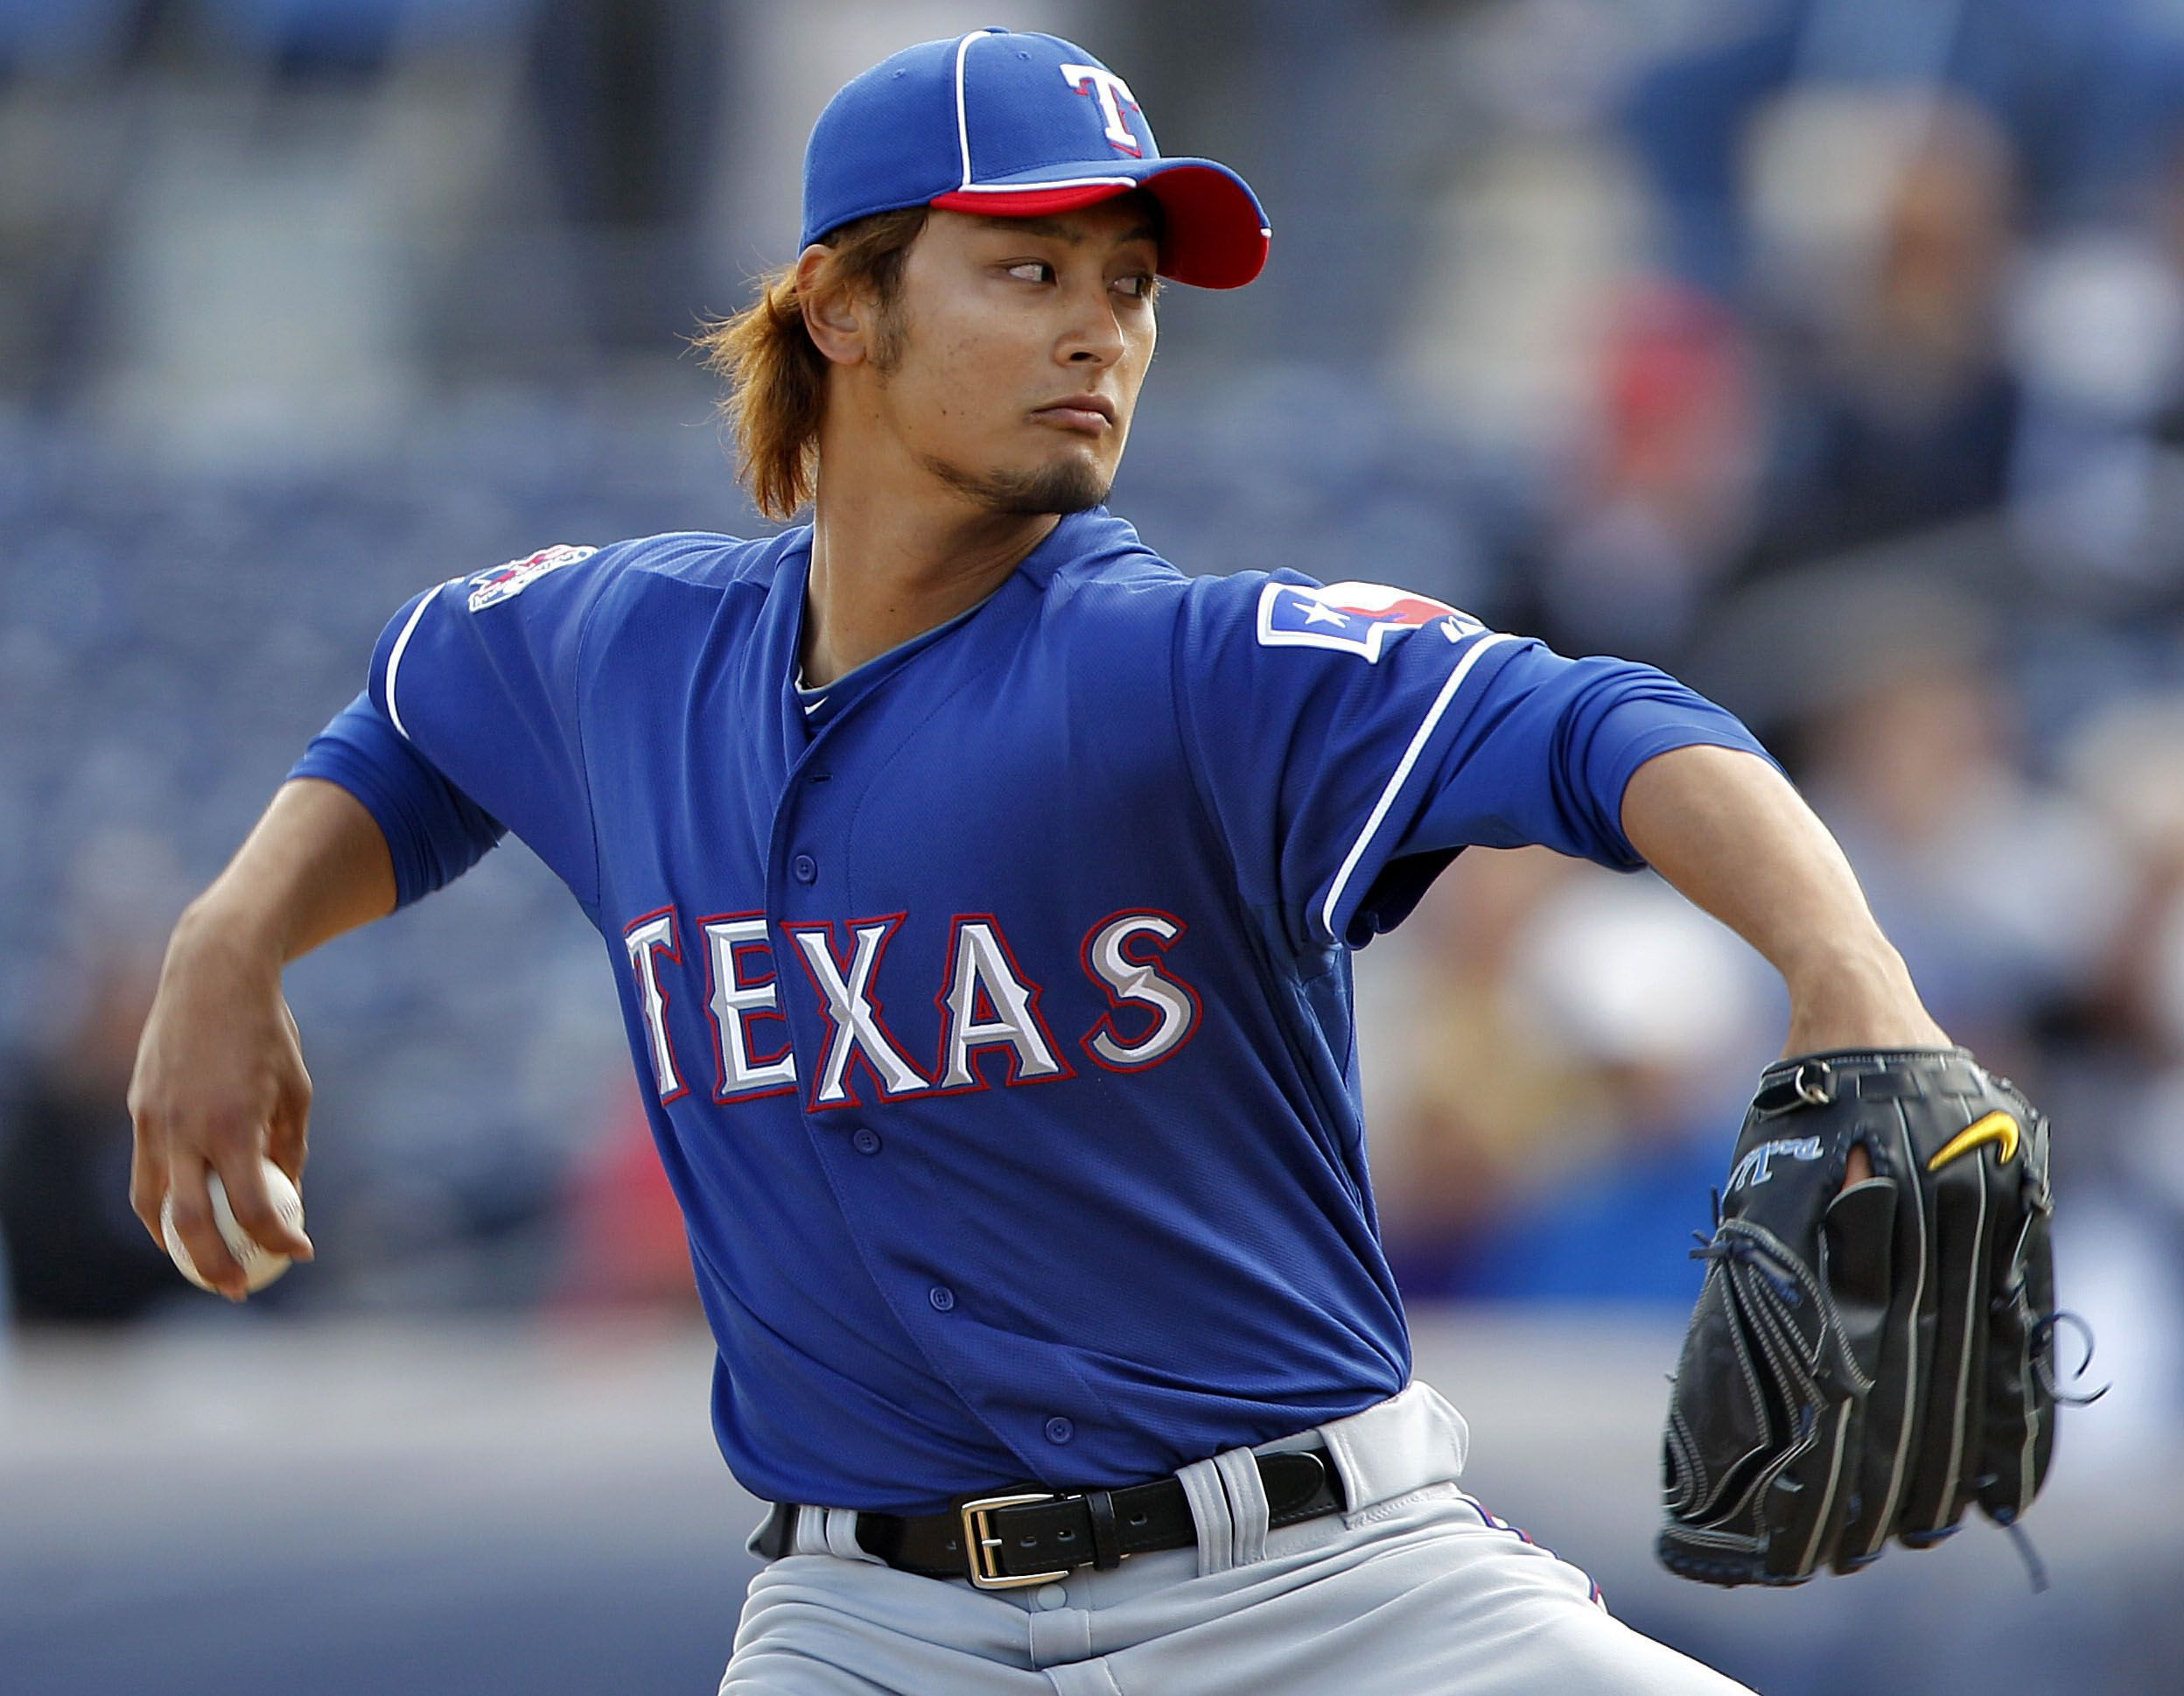 Texas Rangers High Definition Wallpapers